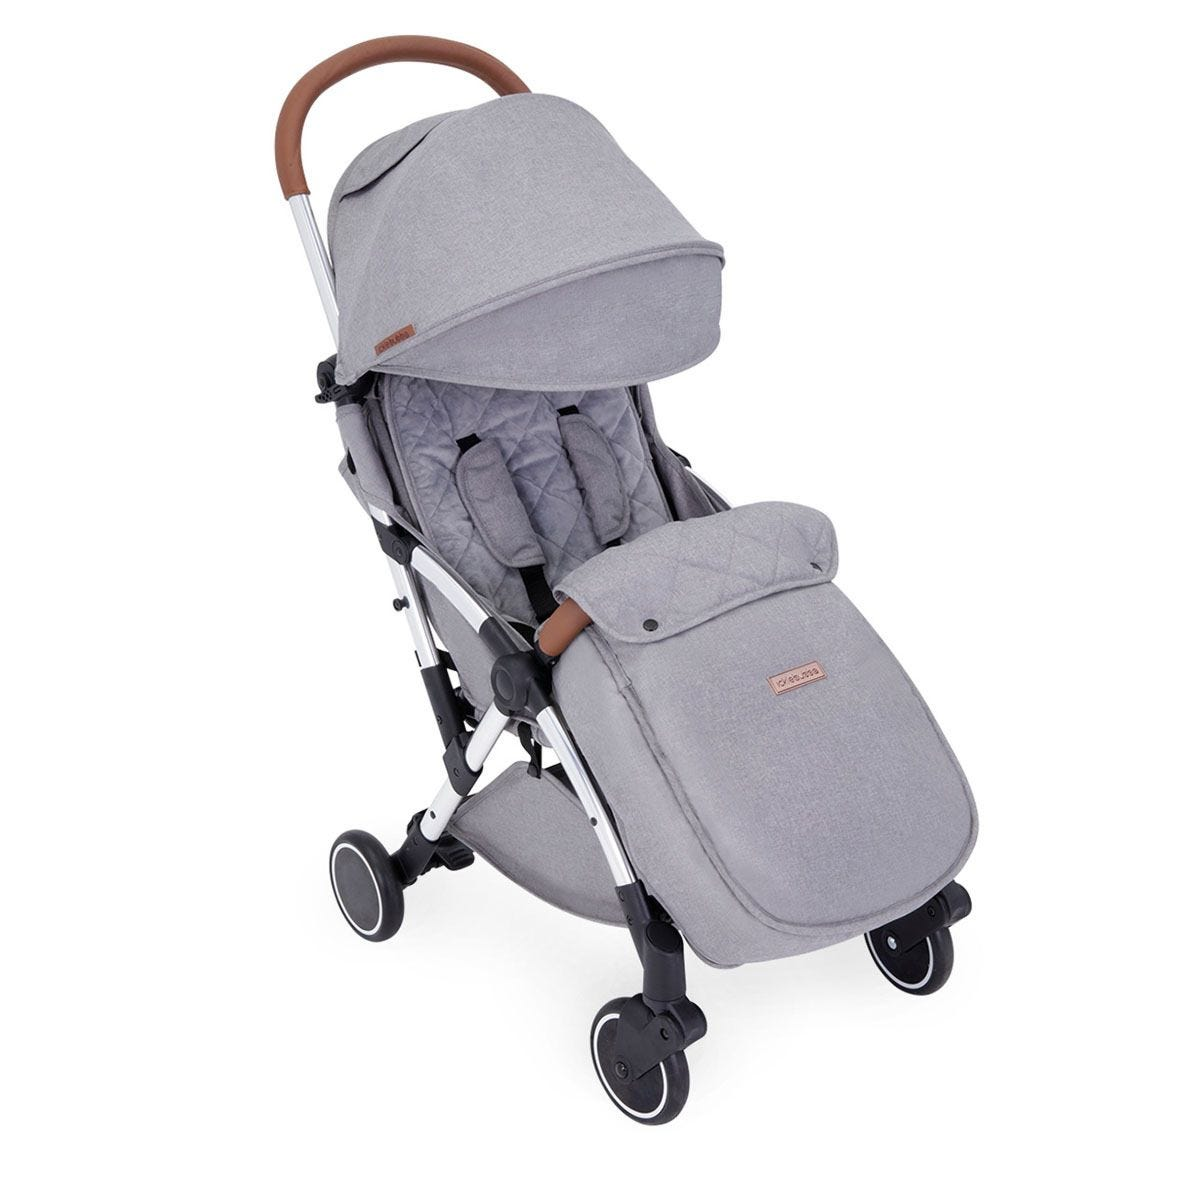 Ickle Bubba Globe Max Stroller - Grey on Silver